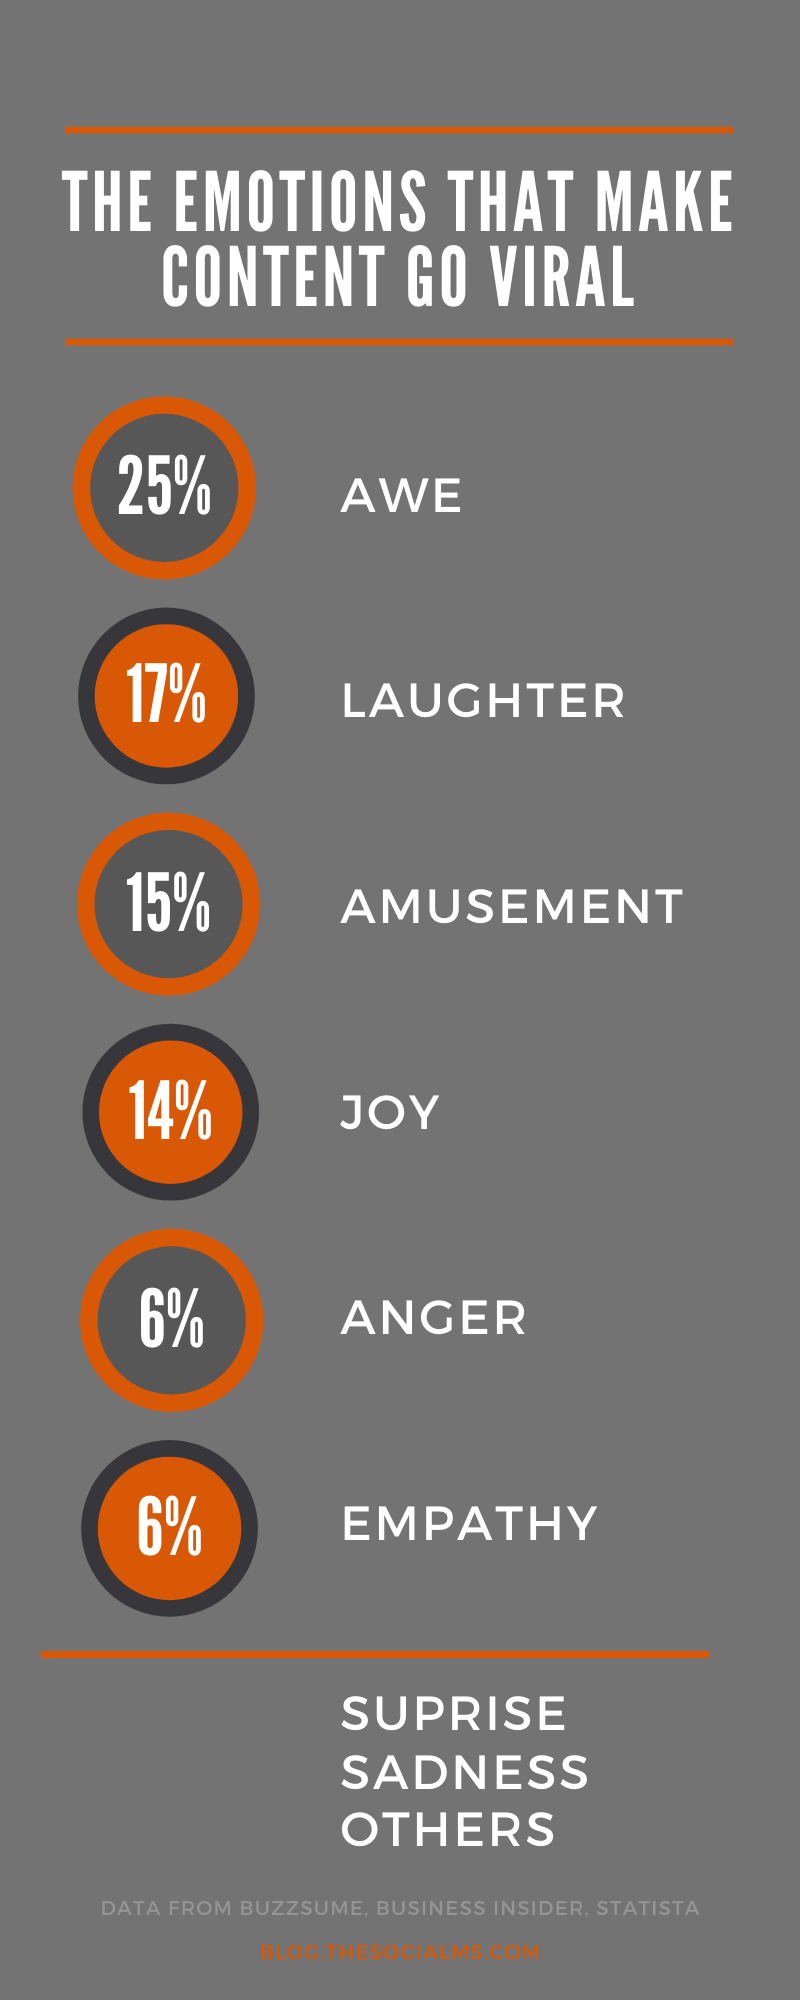 Emotions have tremendous power to trigger reactions. Here are the emotions in content marketing that inspire the most reactions in form of shares and even sales. #contentmarketing #contentcreation #viralcontent